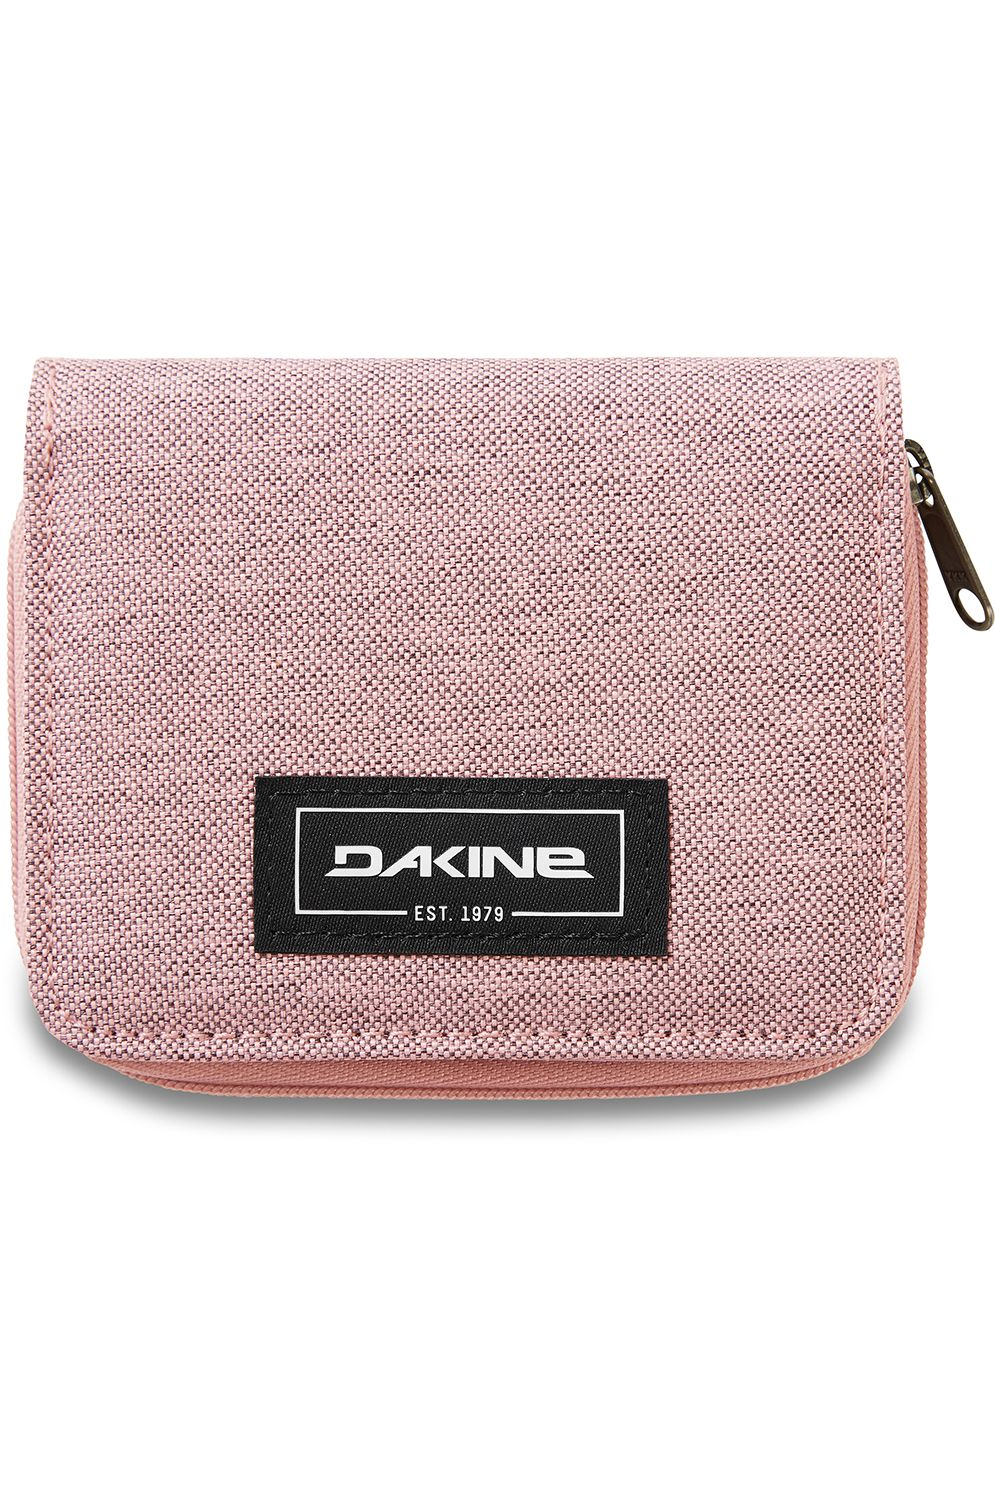 Dakine Wallet SOHO Woodrose